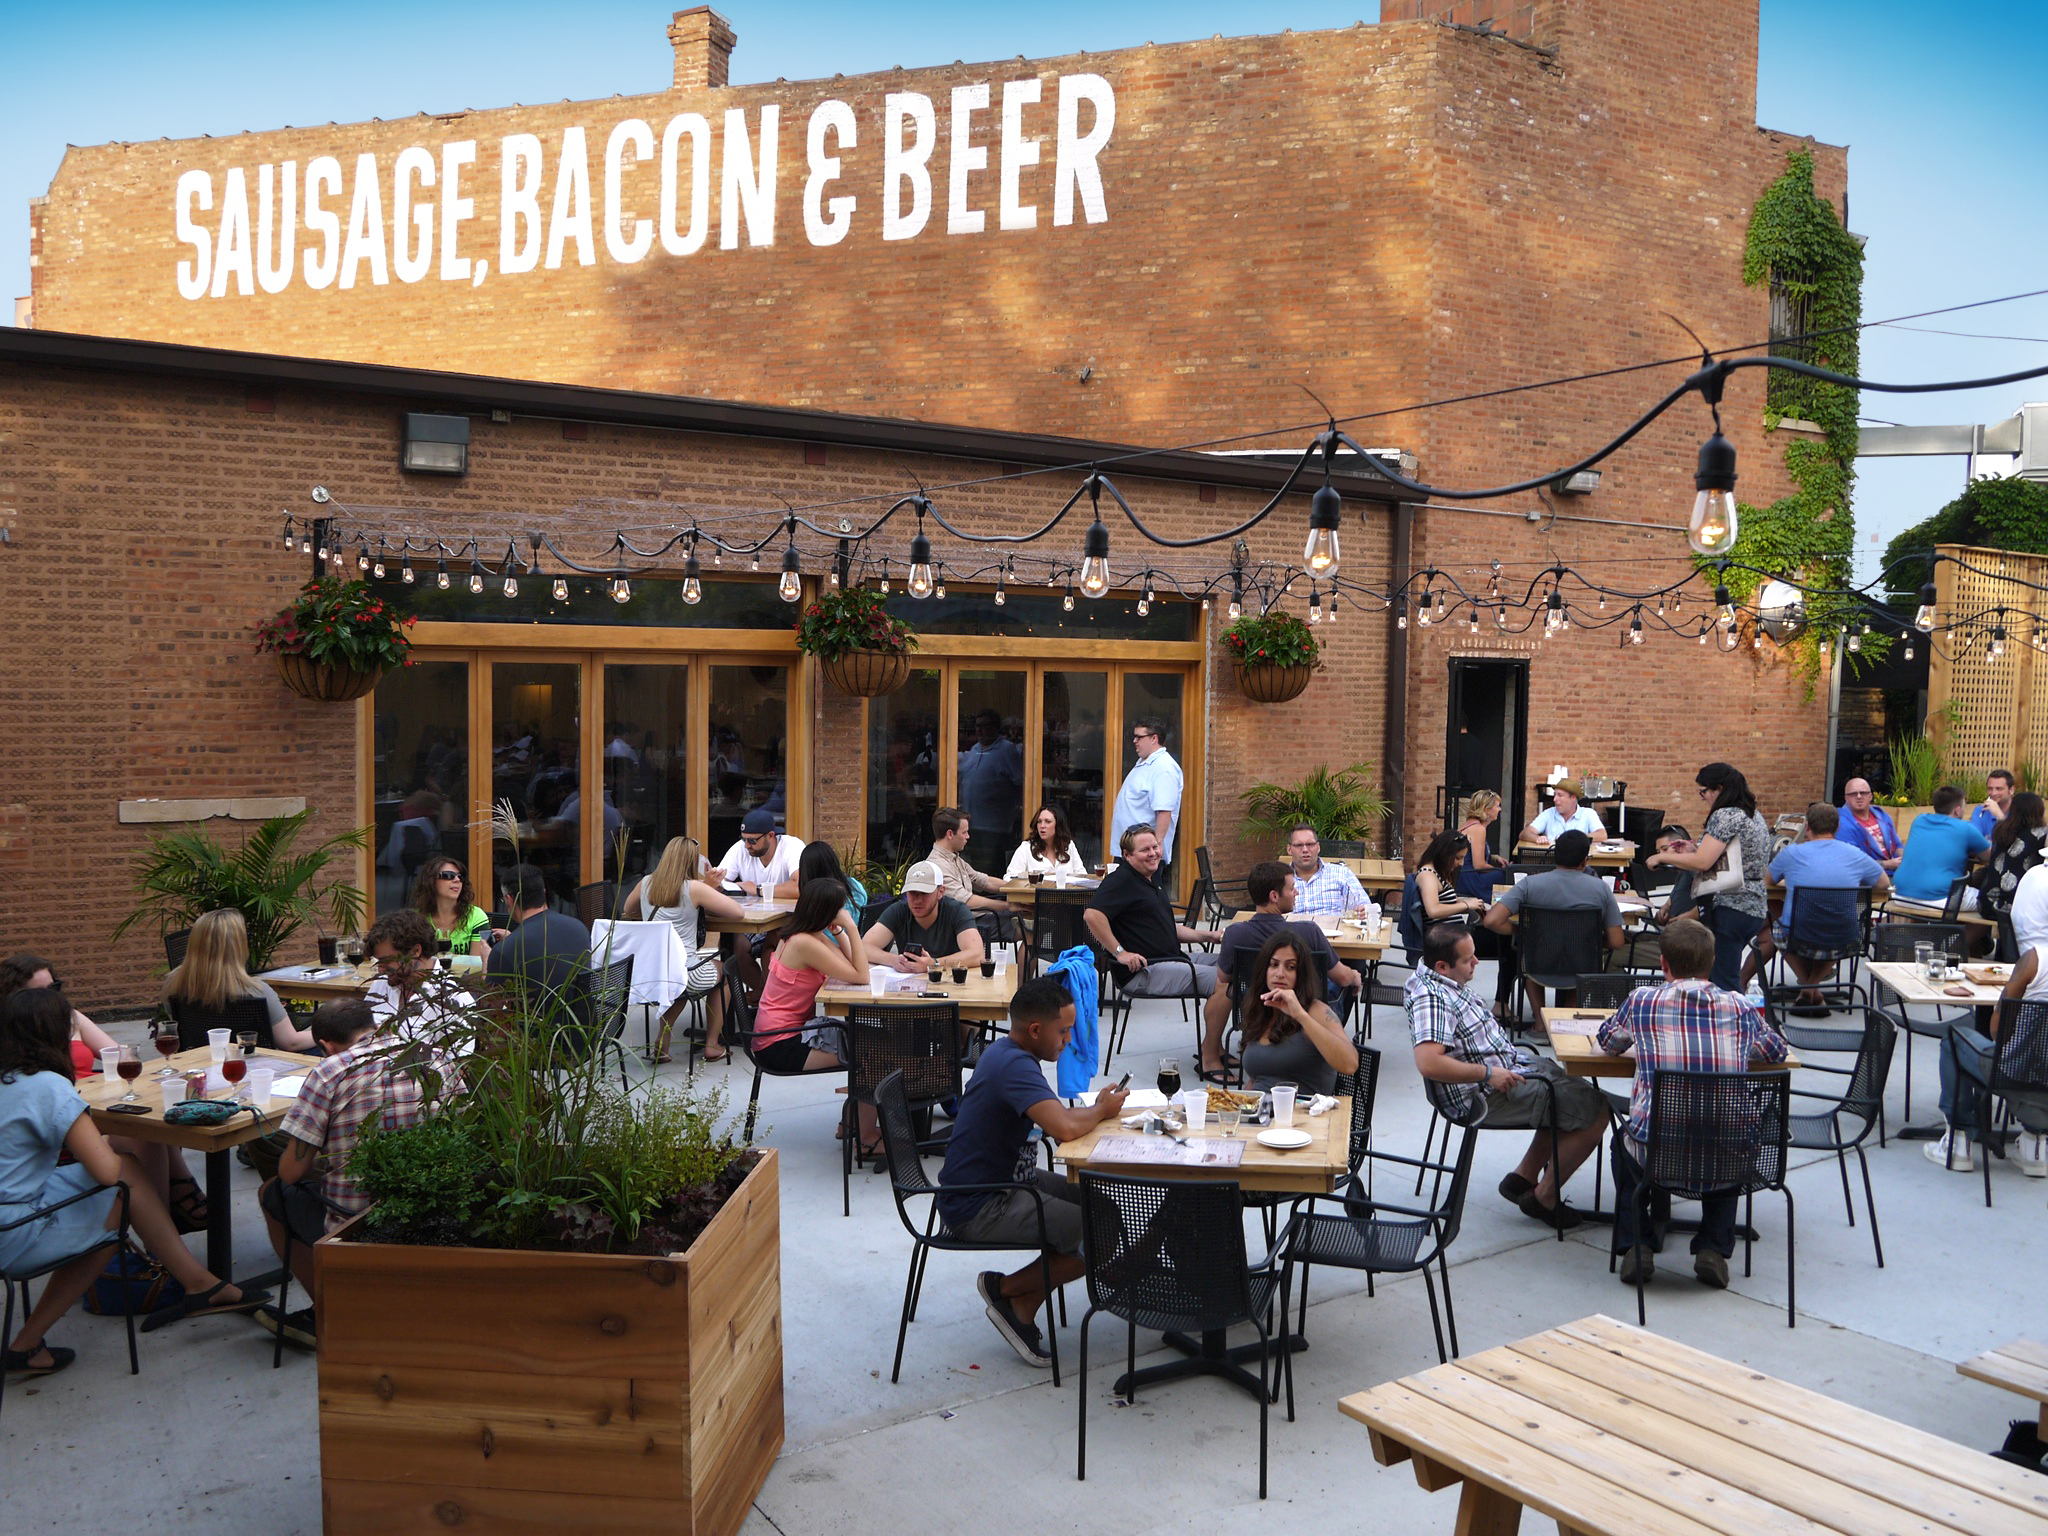 19 Best Outdoor Restaurants, Patios And Cafes In Chicago